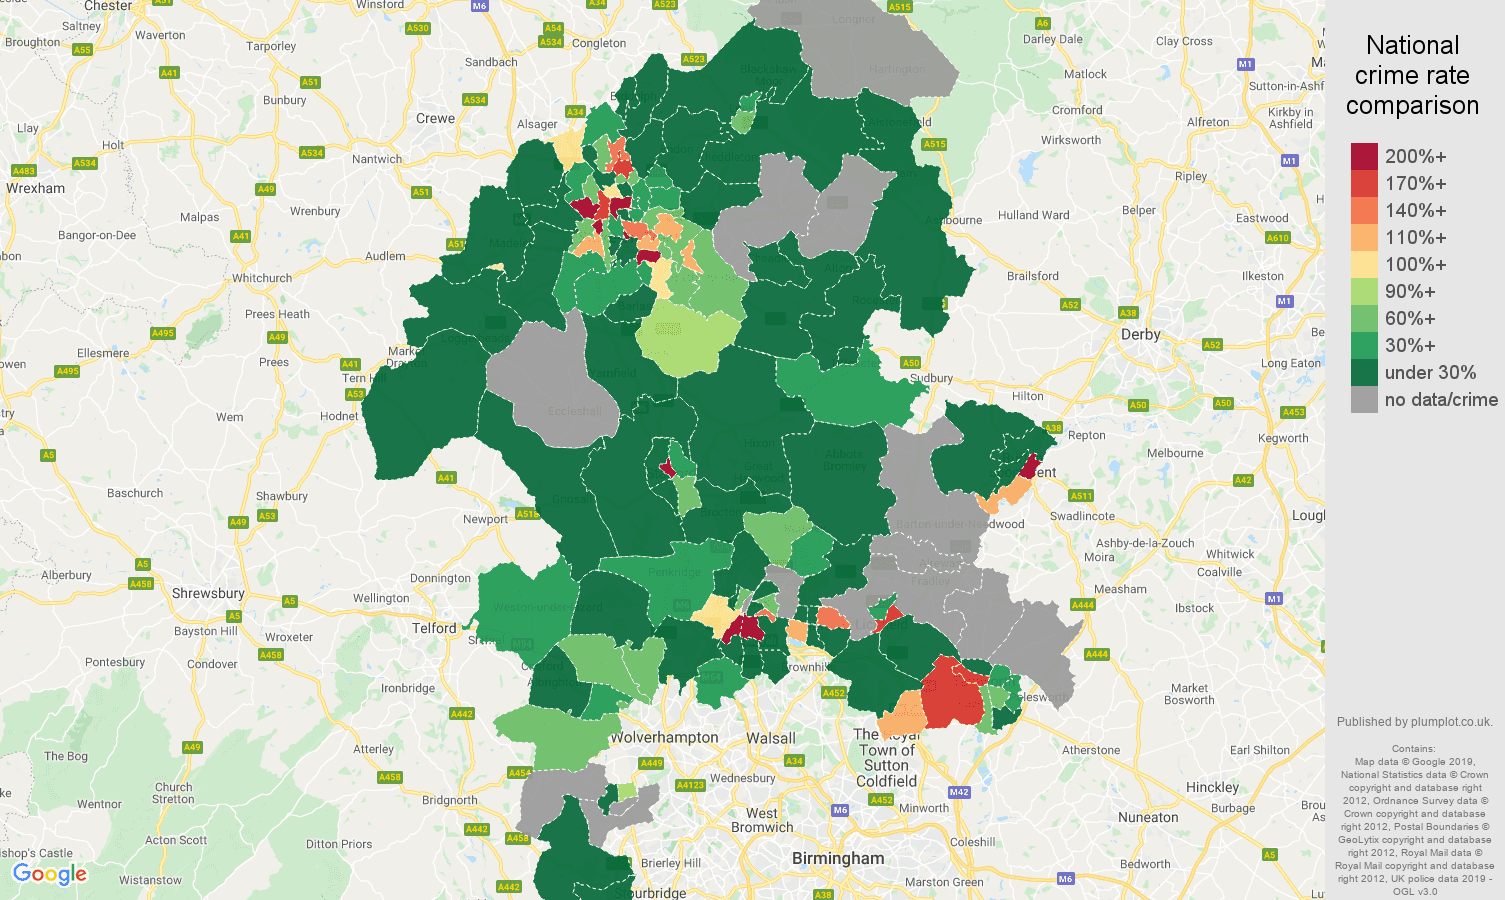 Staffordshire shoplifting crime rate comparison map